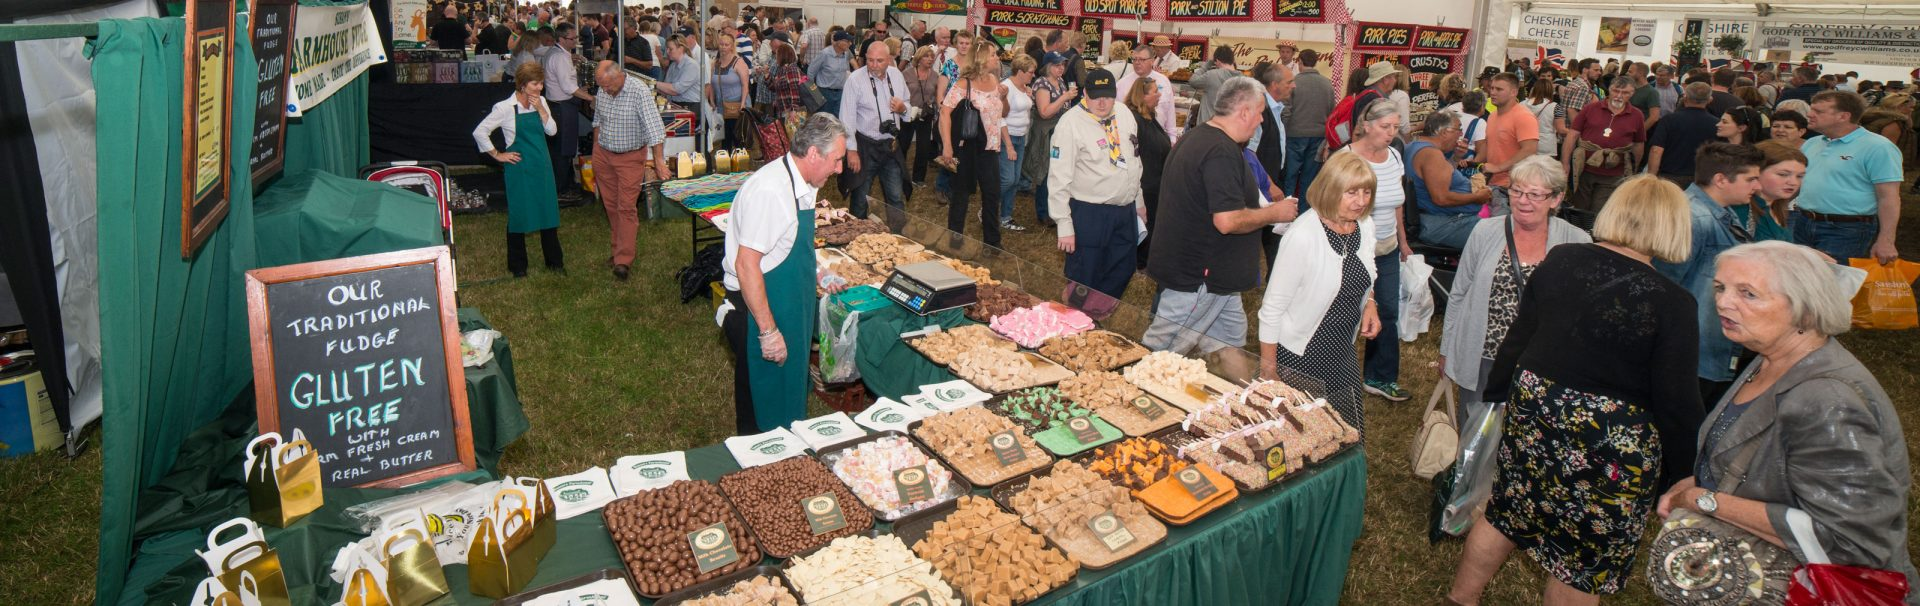 Trade stands the royal cheshire county show for Craft trade shows 2018